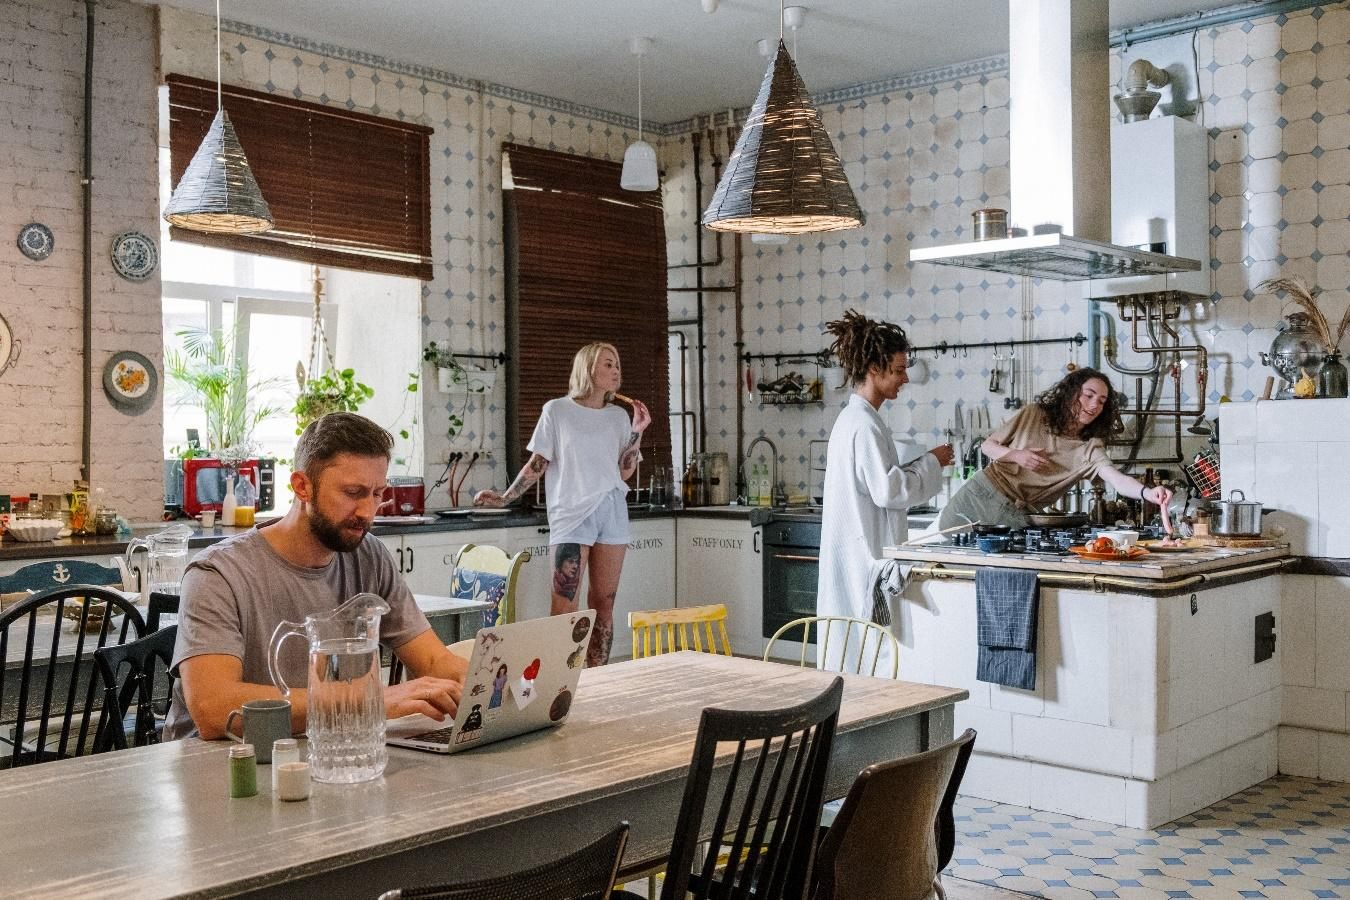 People sharing a kitchen